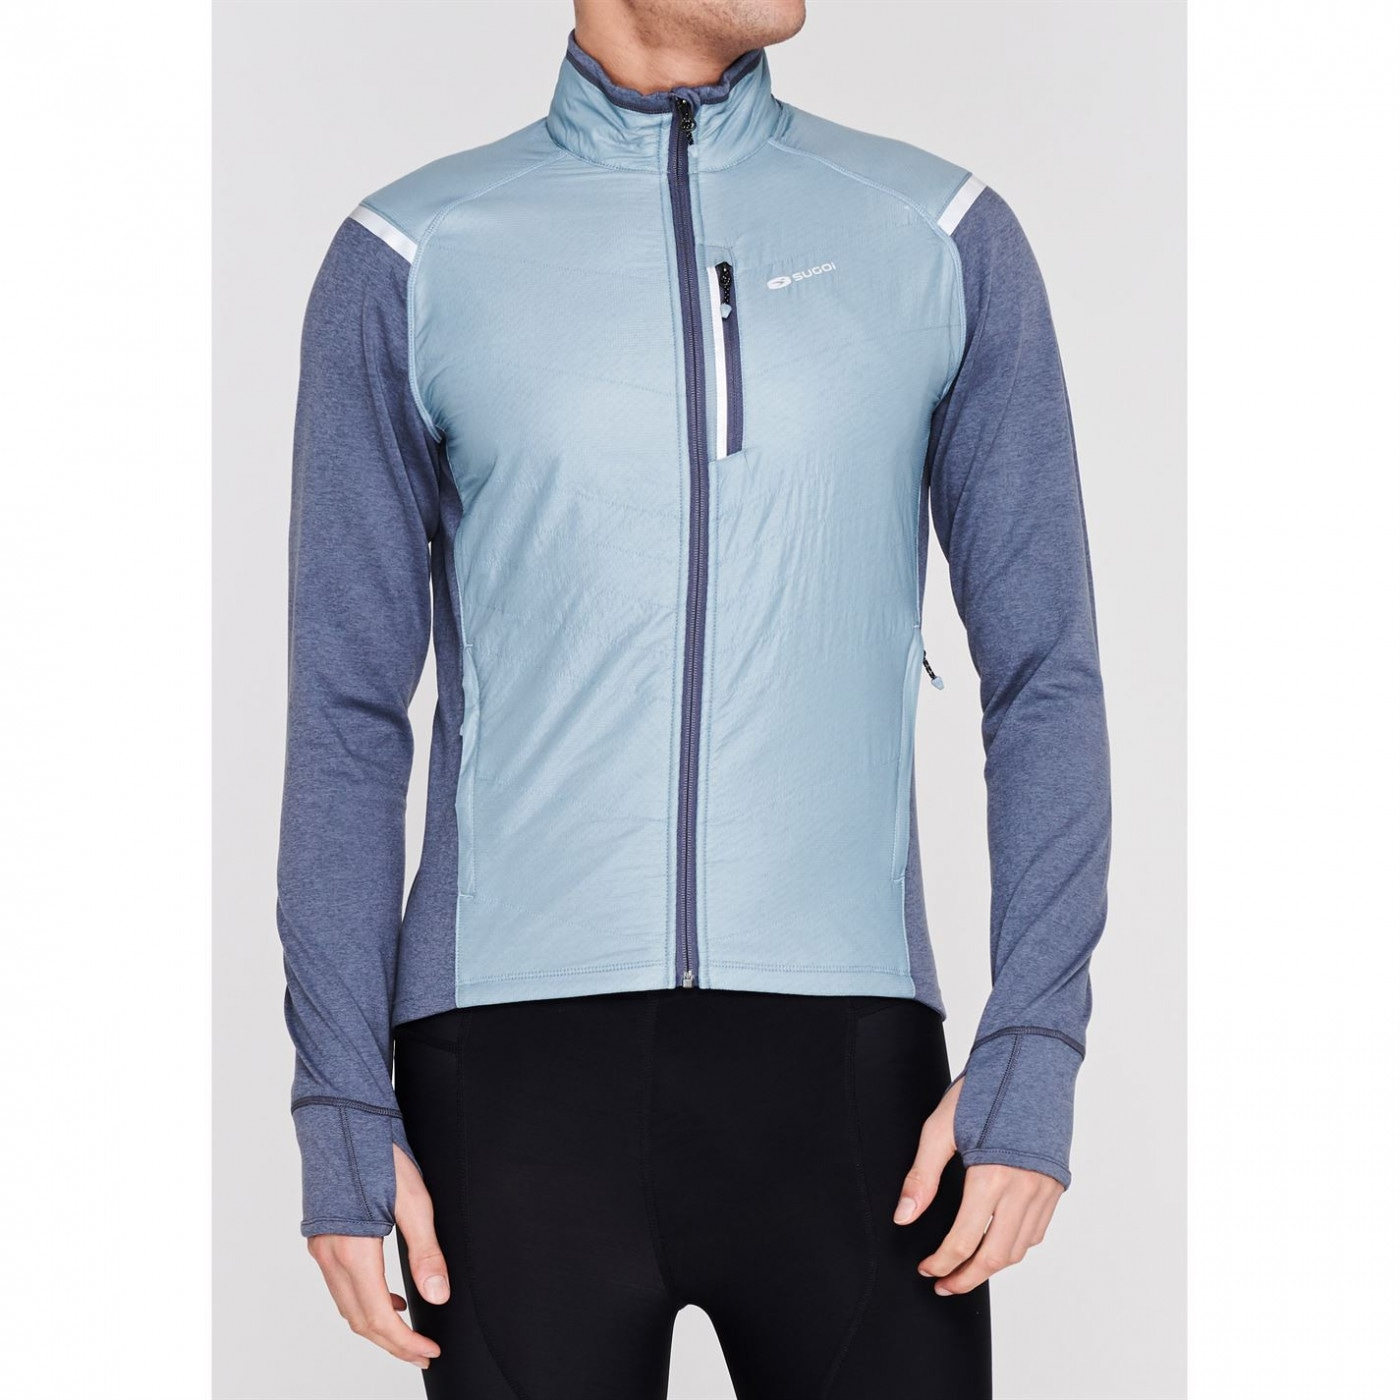 Sugoi Alpha Hybrid Cycling Jacket Mens